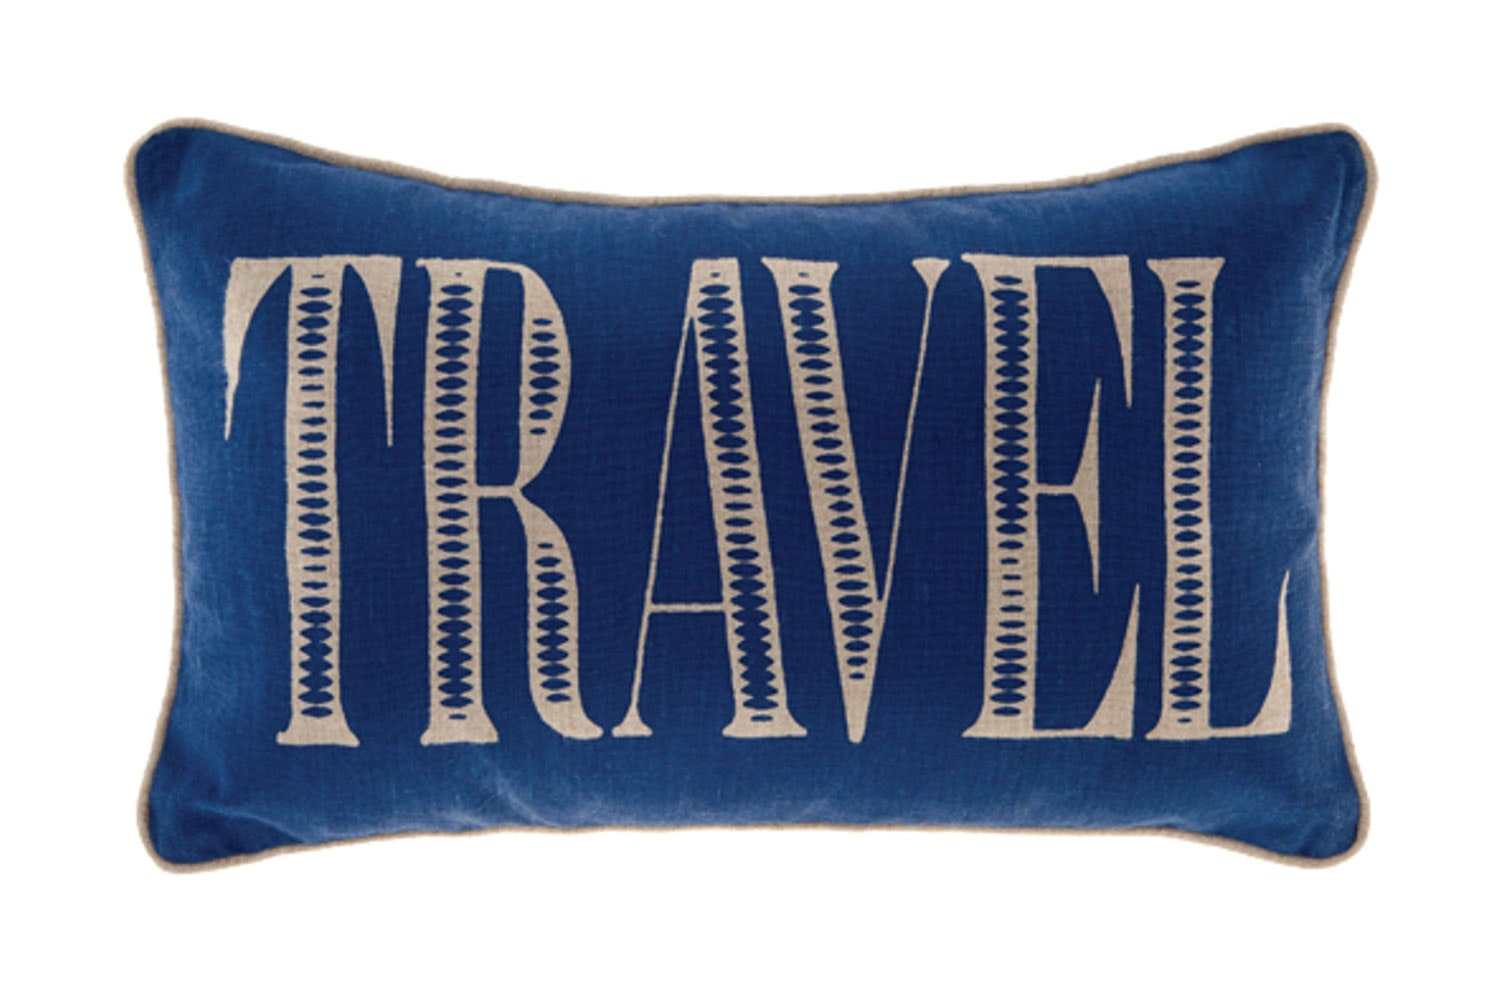 Travel Cushion